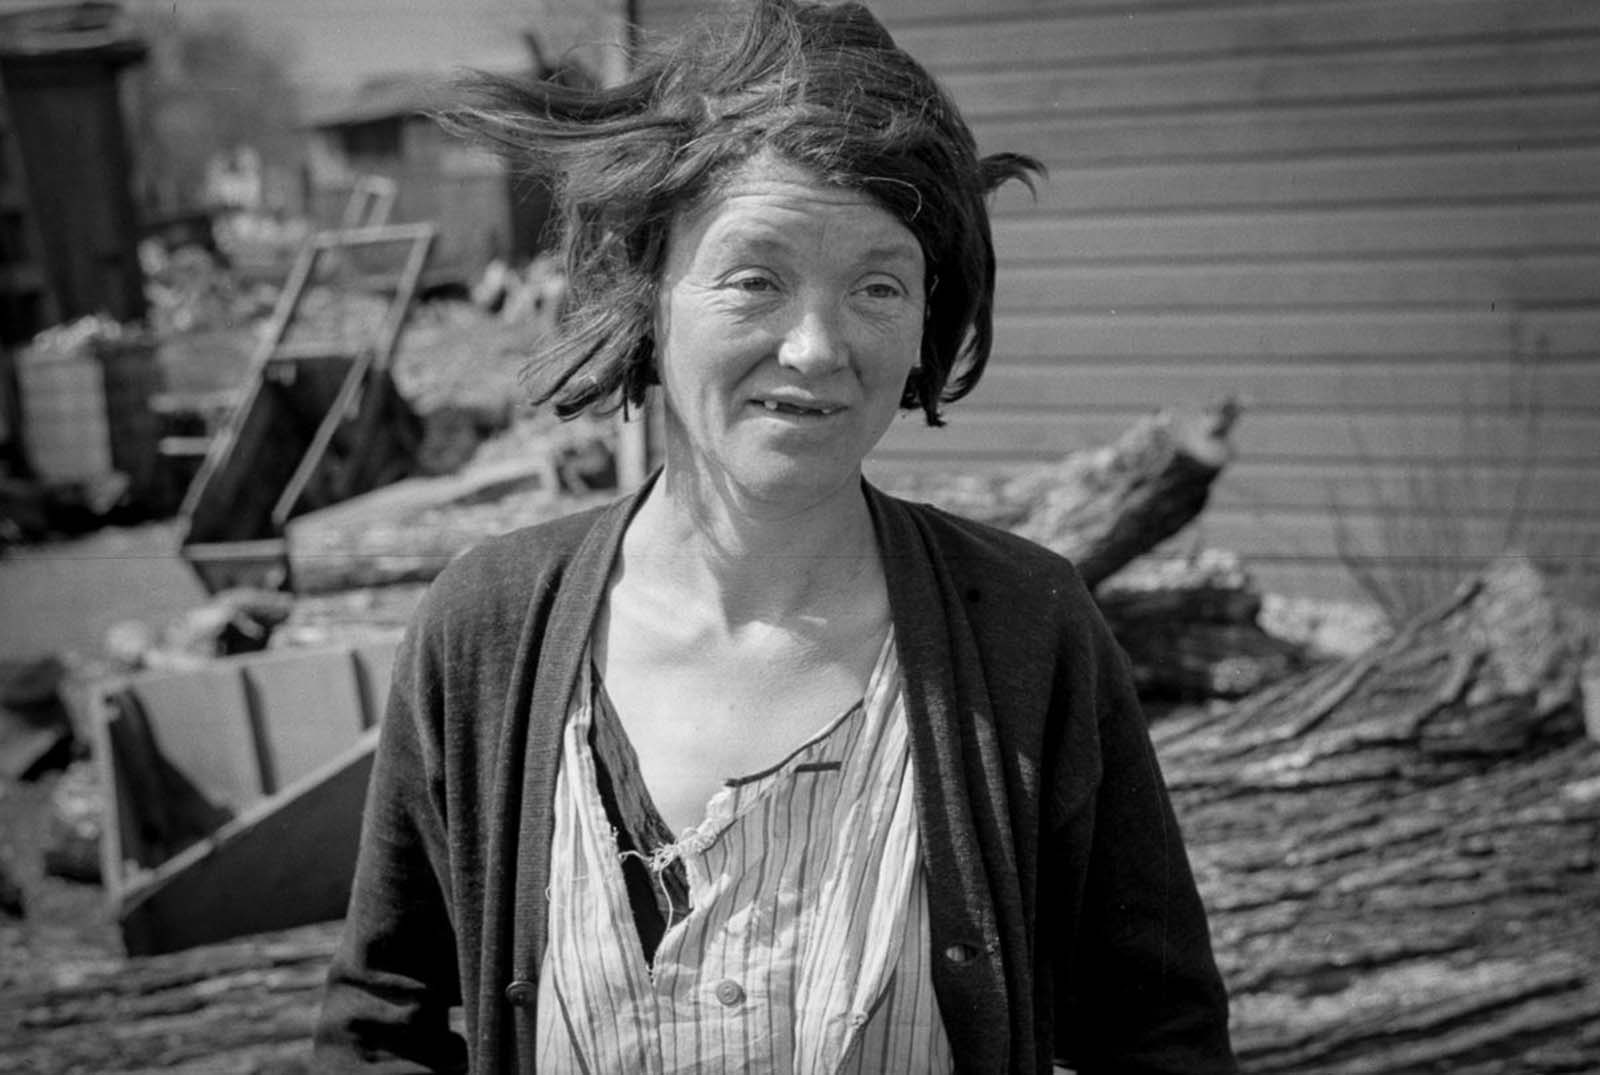 A resident of the river bottoms shacktown in Dubuque, Iowa. 1940.